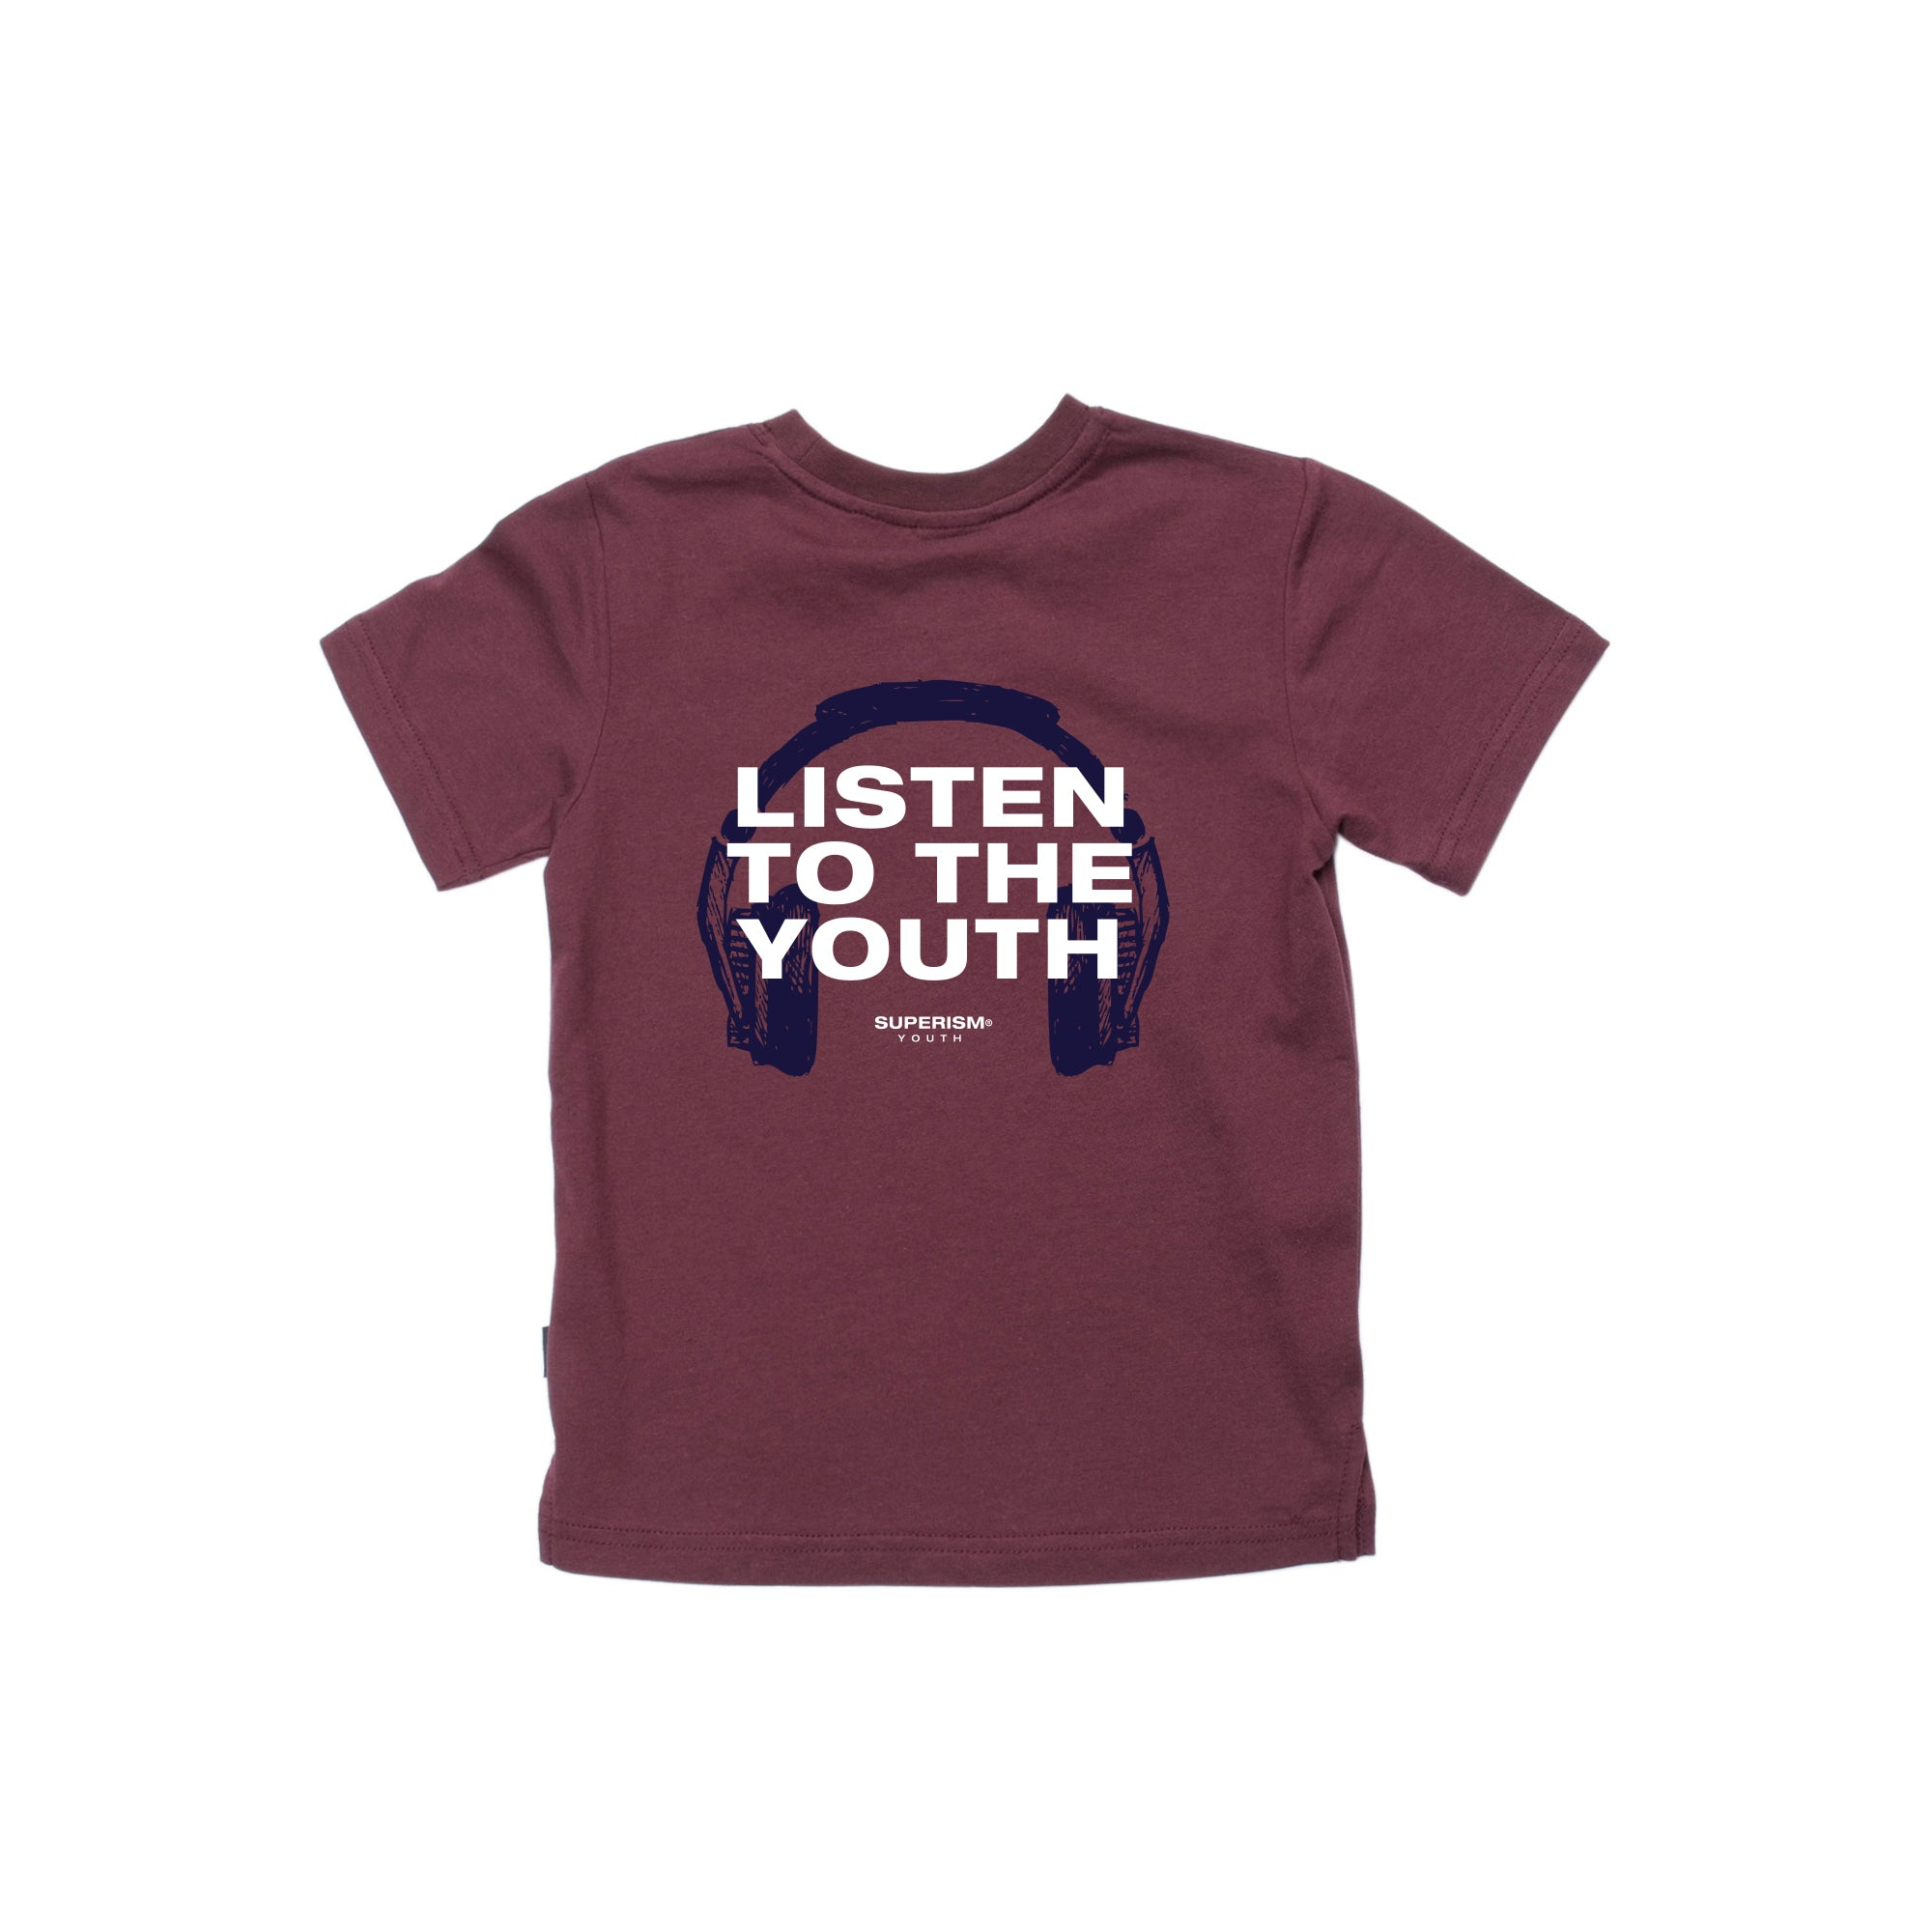 Listen to the Youth - Maroon